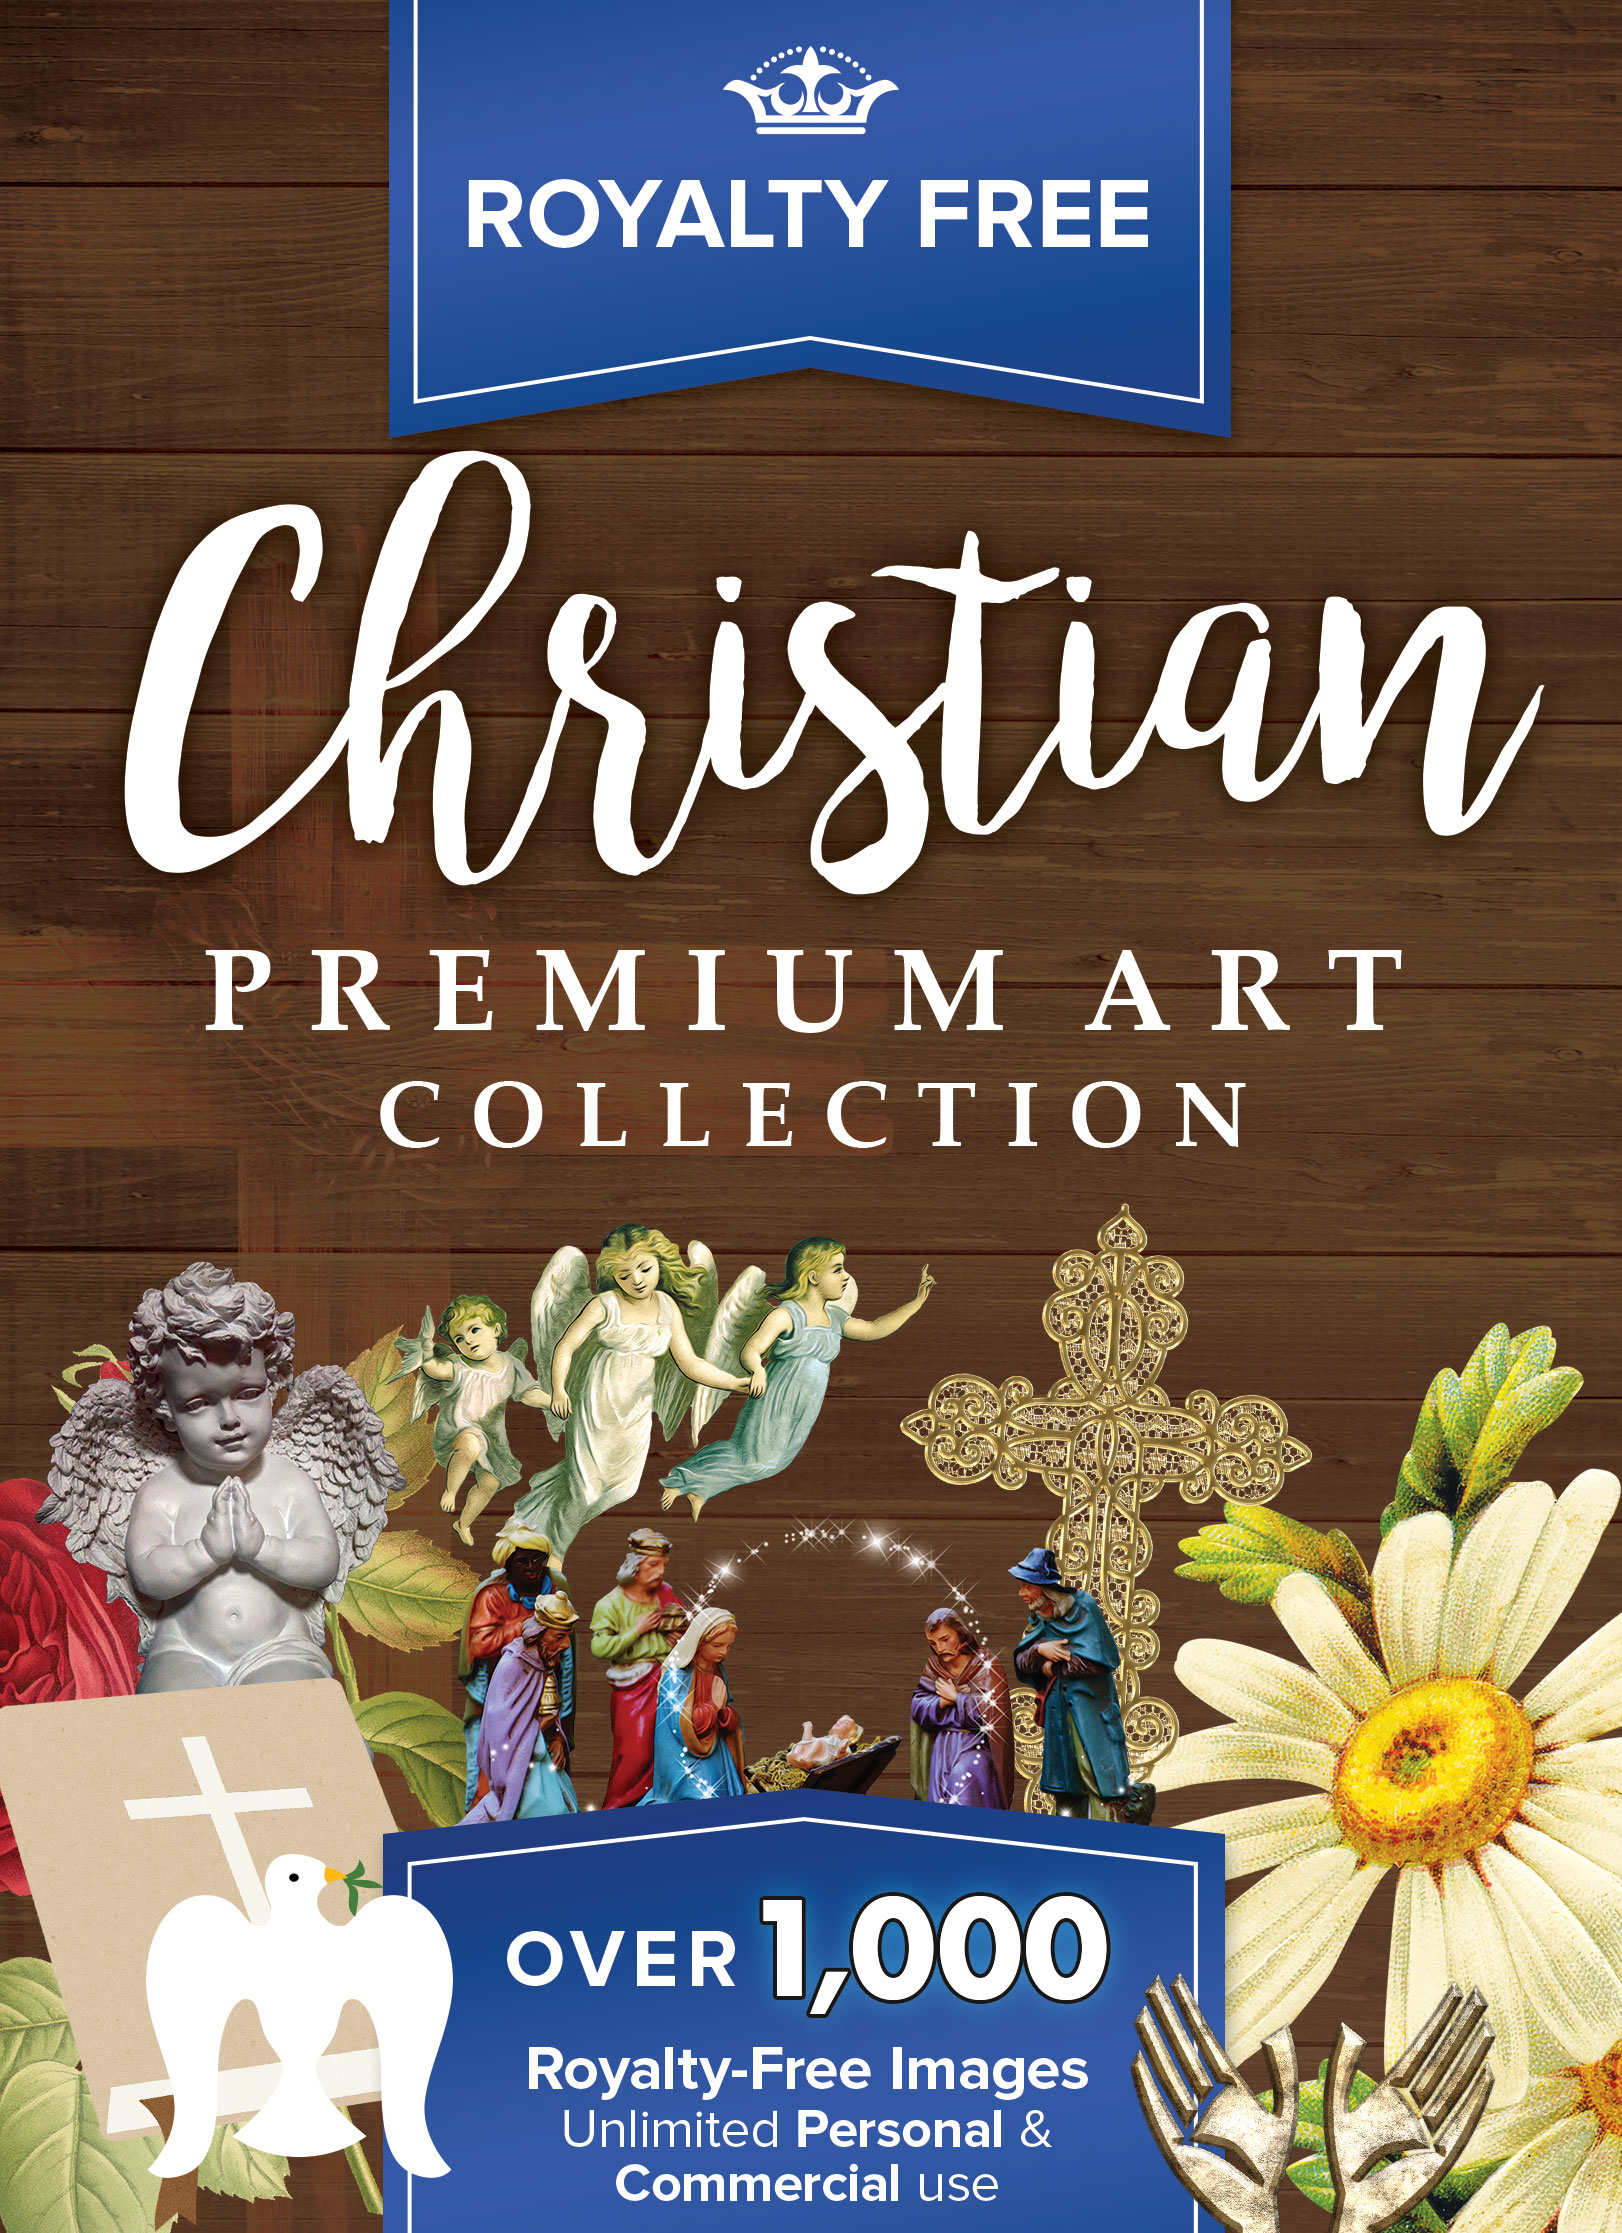 Royalty Free Premium Christian Images for PC [Download]